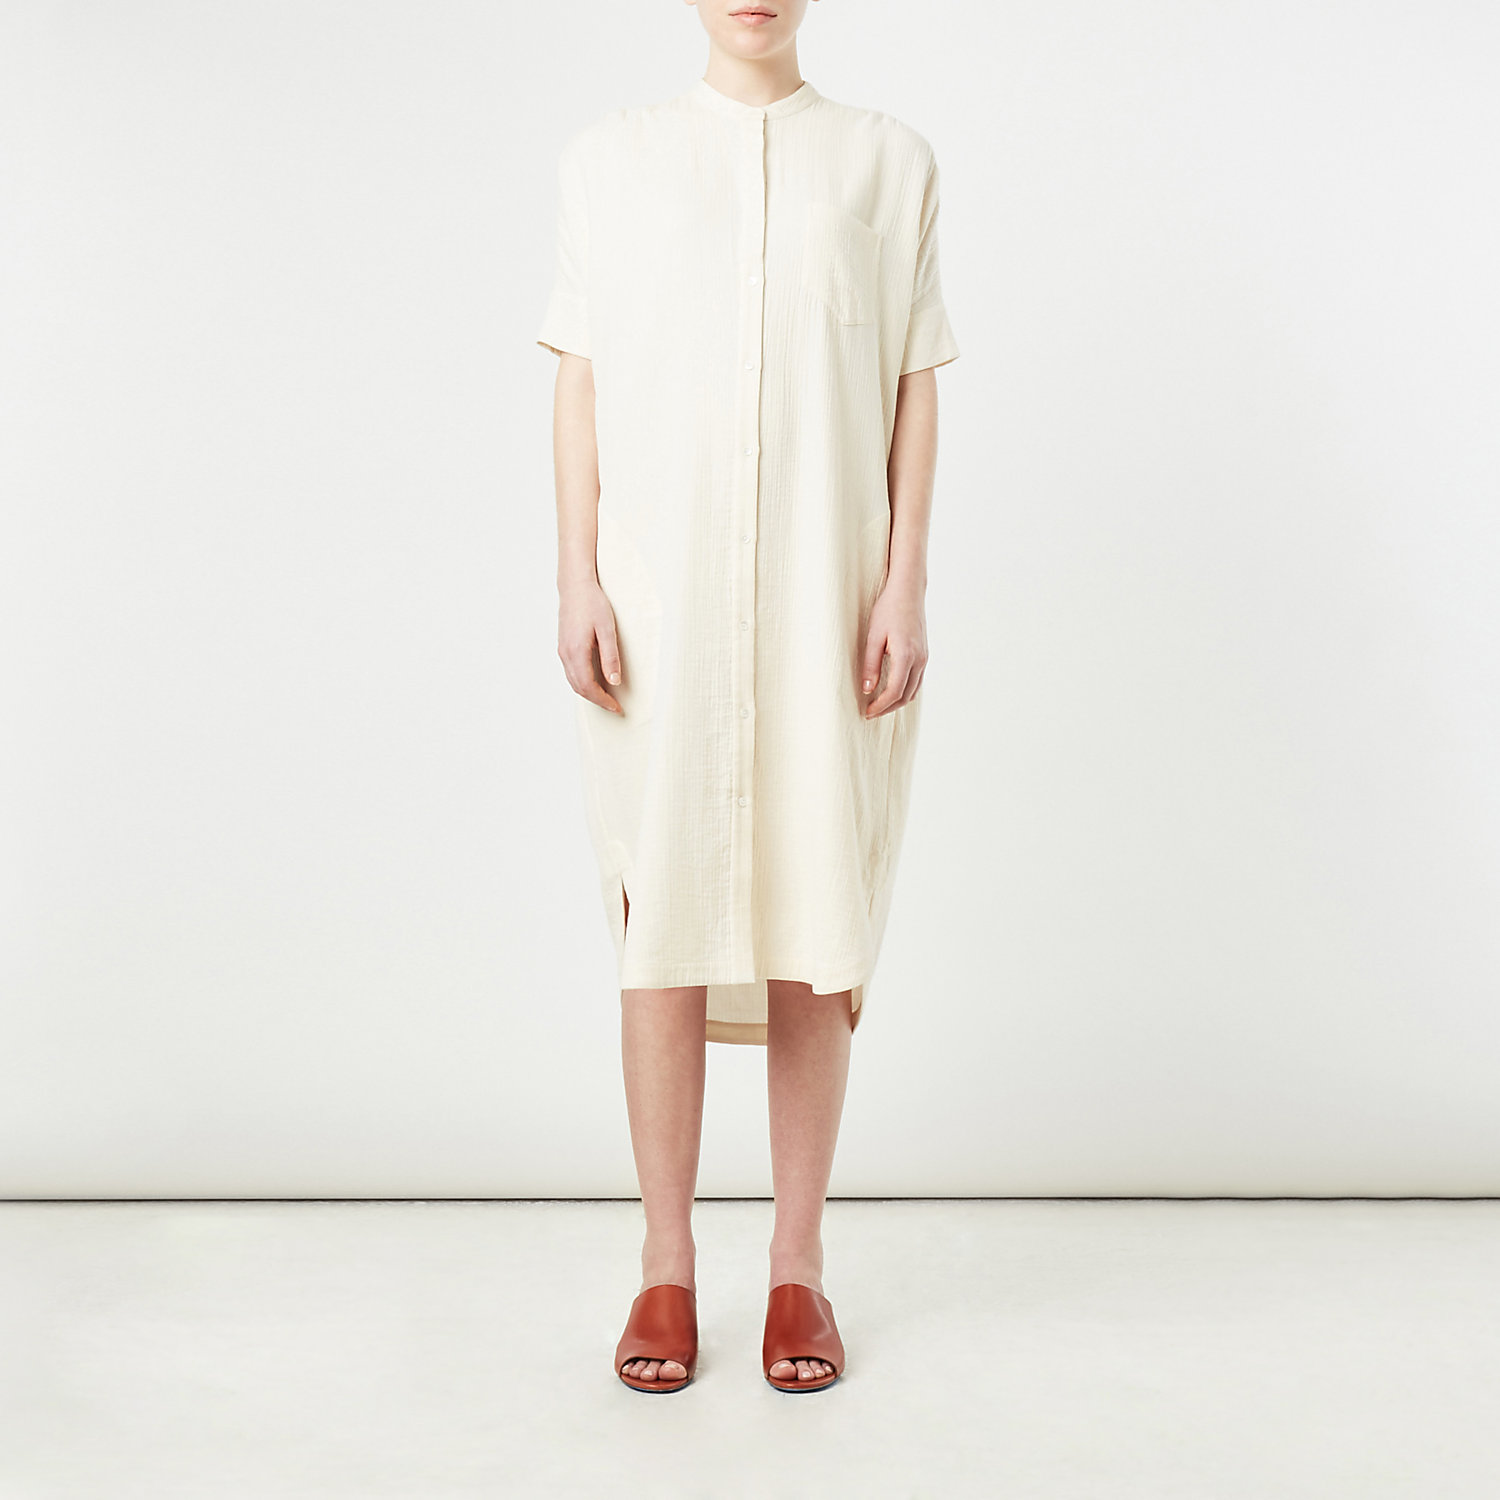 OVERSIZED STAND COLLAR DRESS